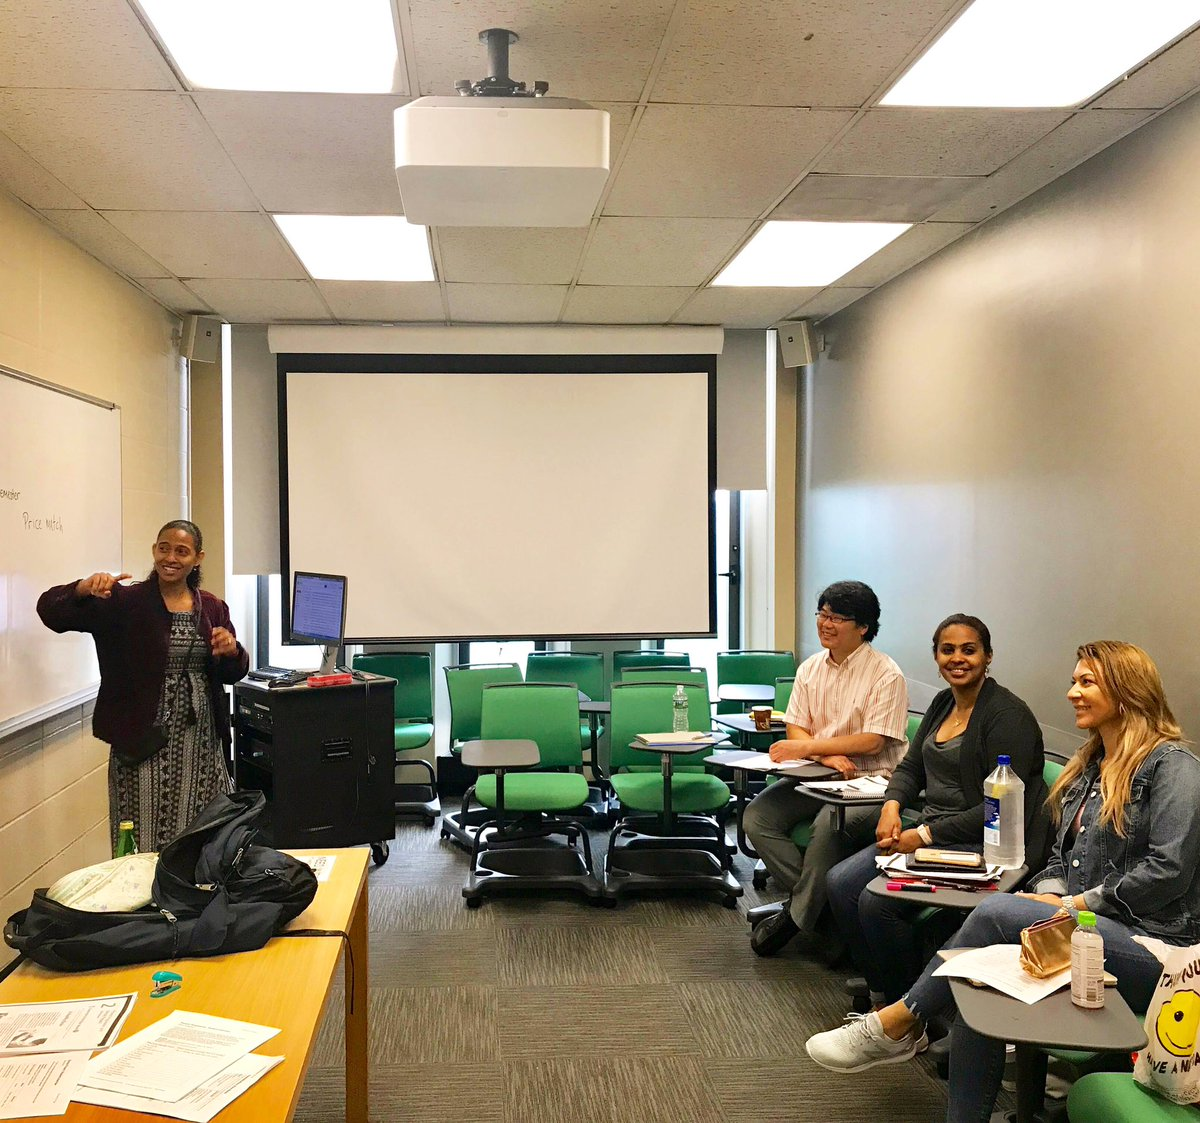 Take a look at our website to register for spring classes! We offer English language courses that specialize in topics such as business, arts, culture, and so many more! #fordham #ialc #esl